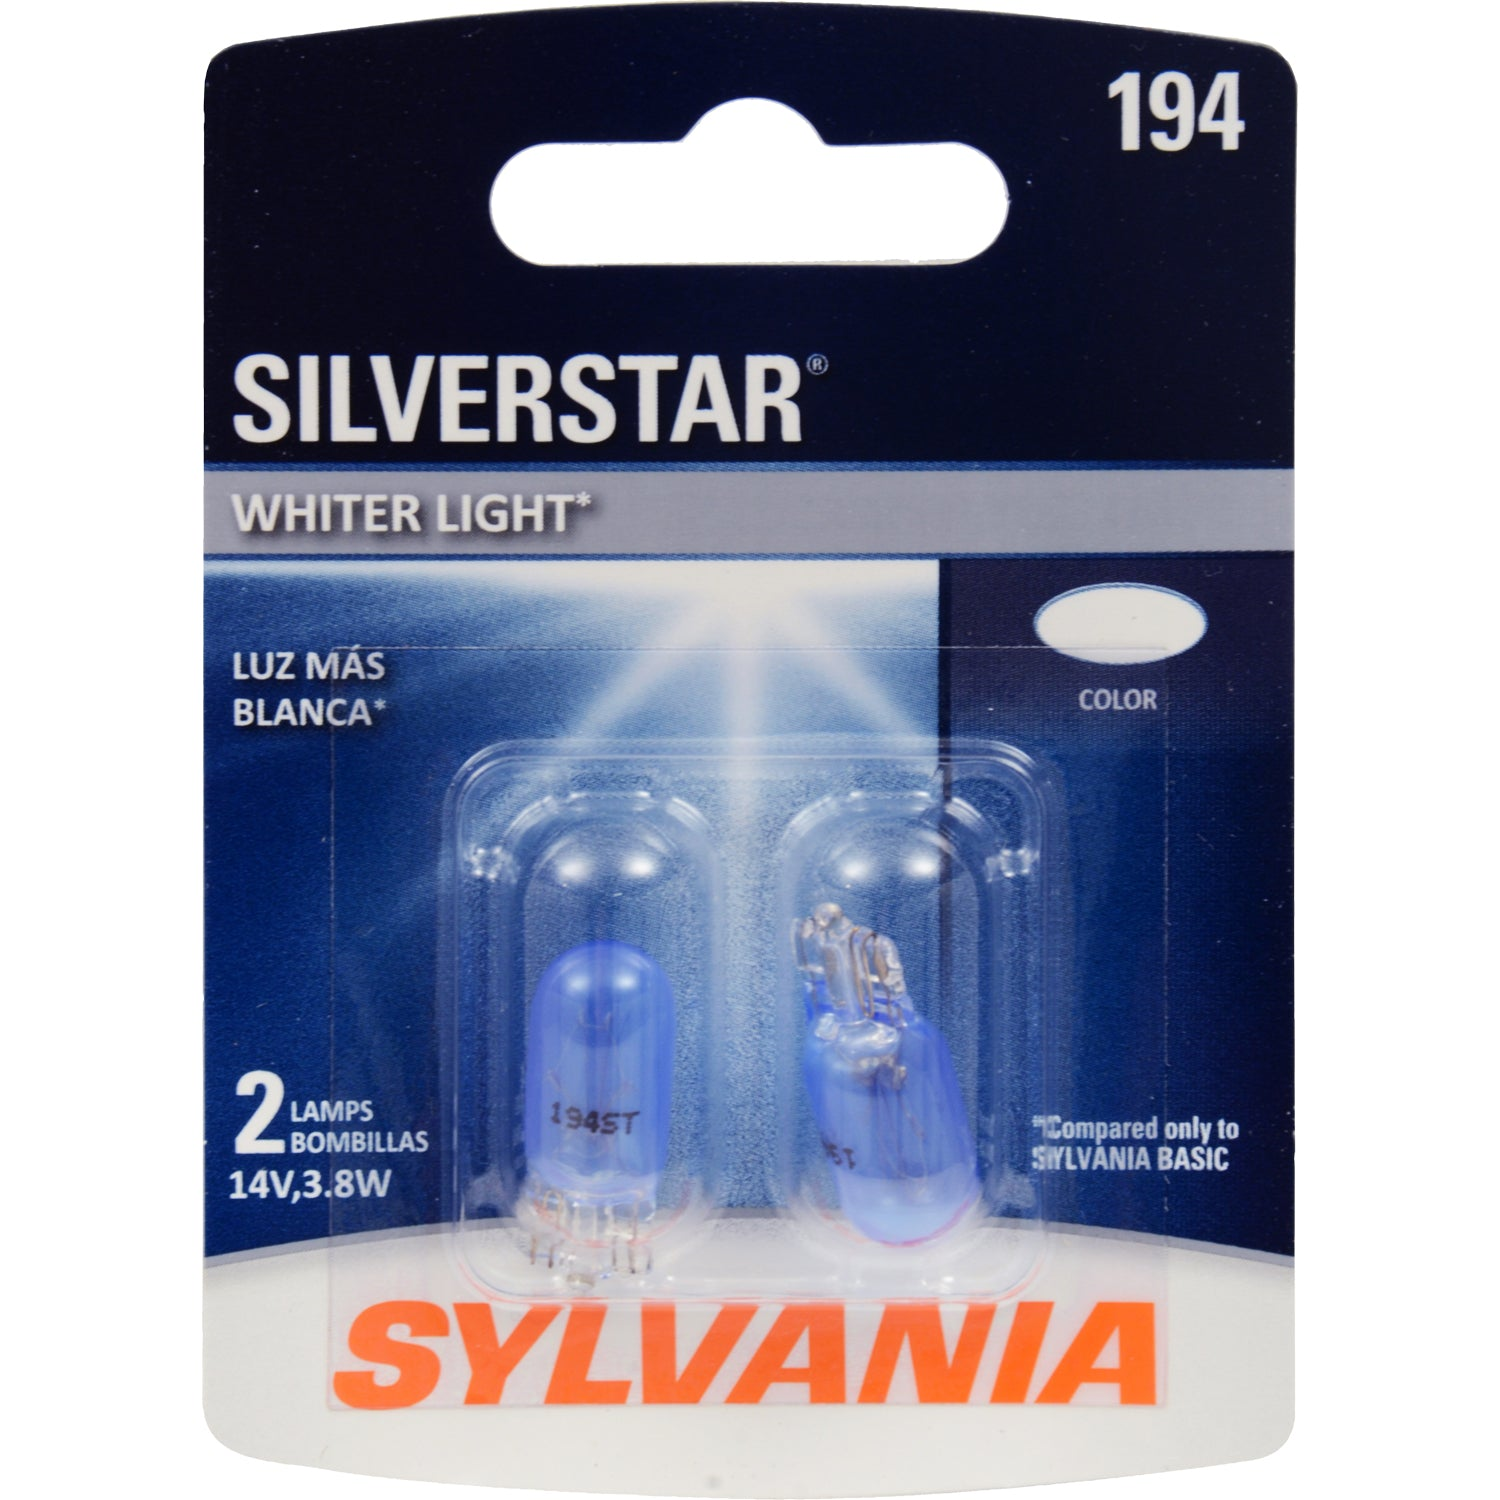 2-PK SYLVANIA 194 SilverStar High Performance Automotive Light Bulb